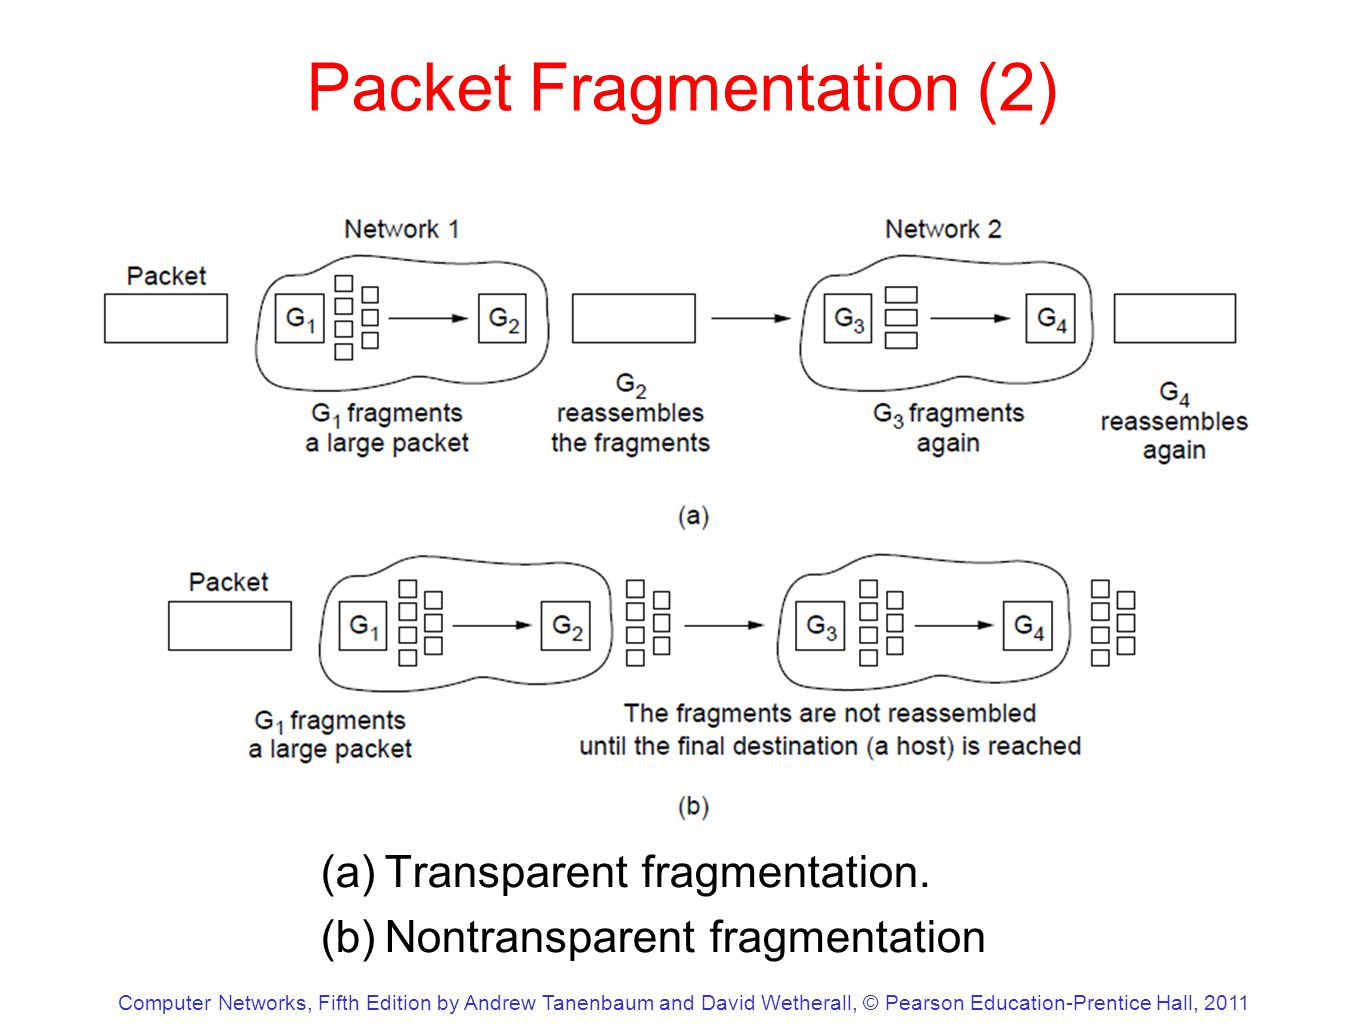 Computer Networks, Fifth Edition by Andrew Tanenbaum and David Wetherall, © Pearson Education-Prentice Hall, 2011 Packet Fragmentation (2) (a)Transparent fragmentation.